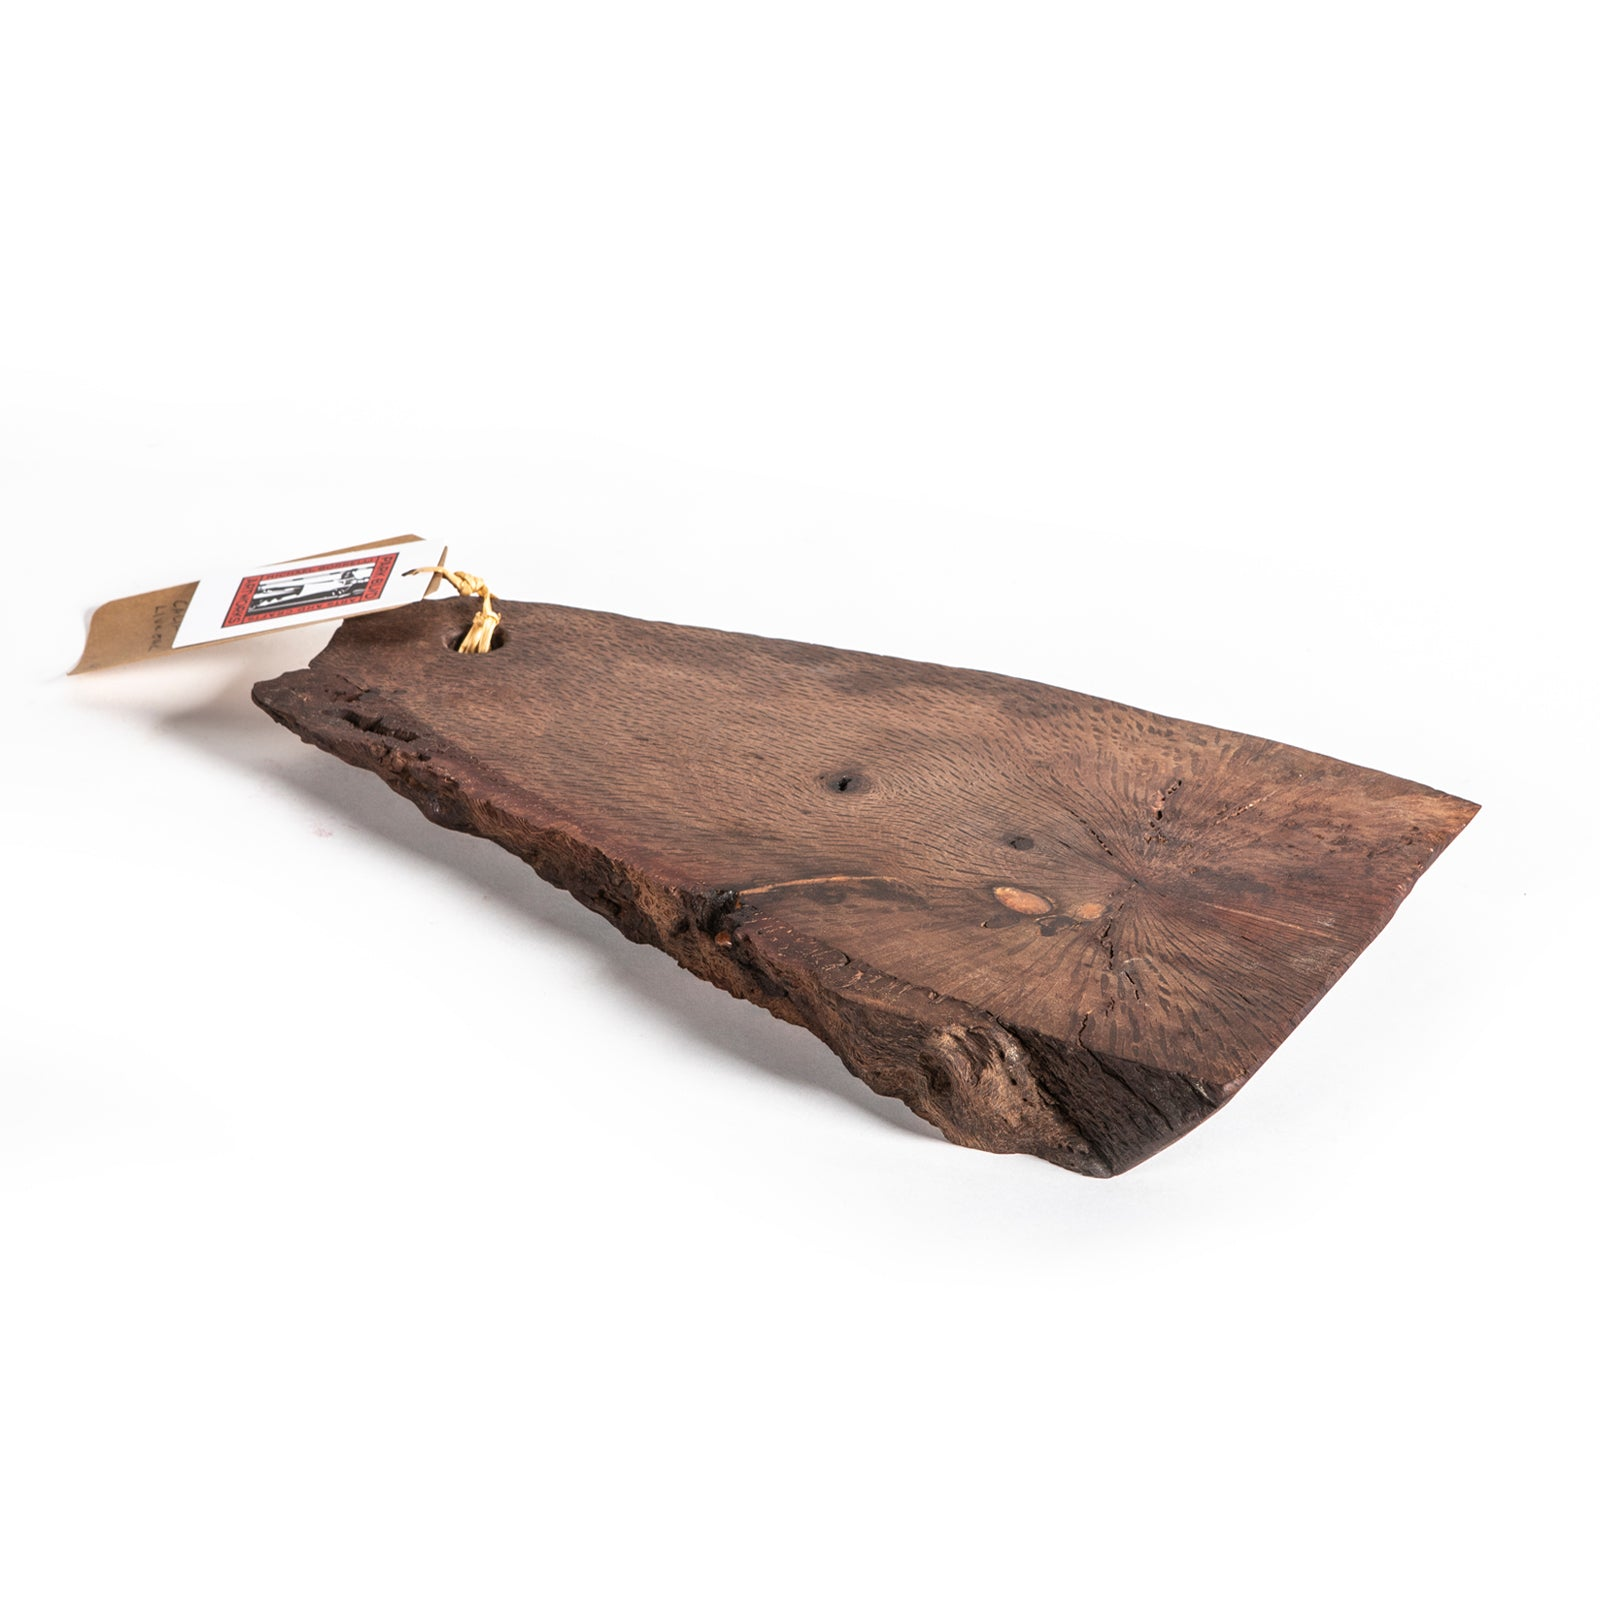 028 California Live Oak Fire Salvage Cutting Board